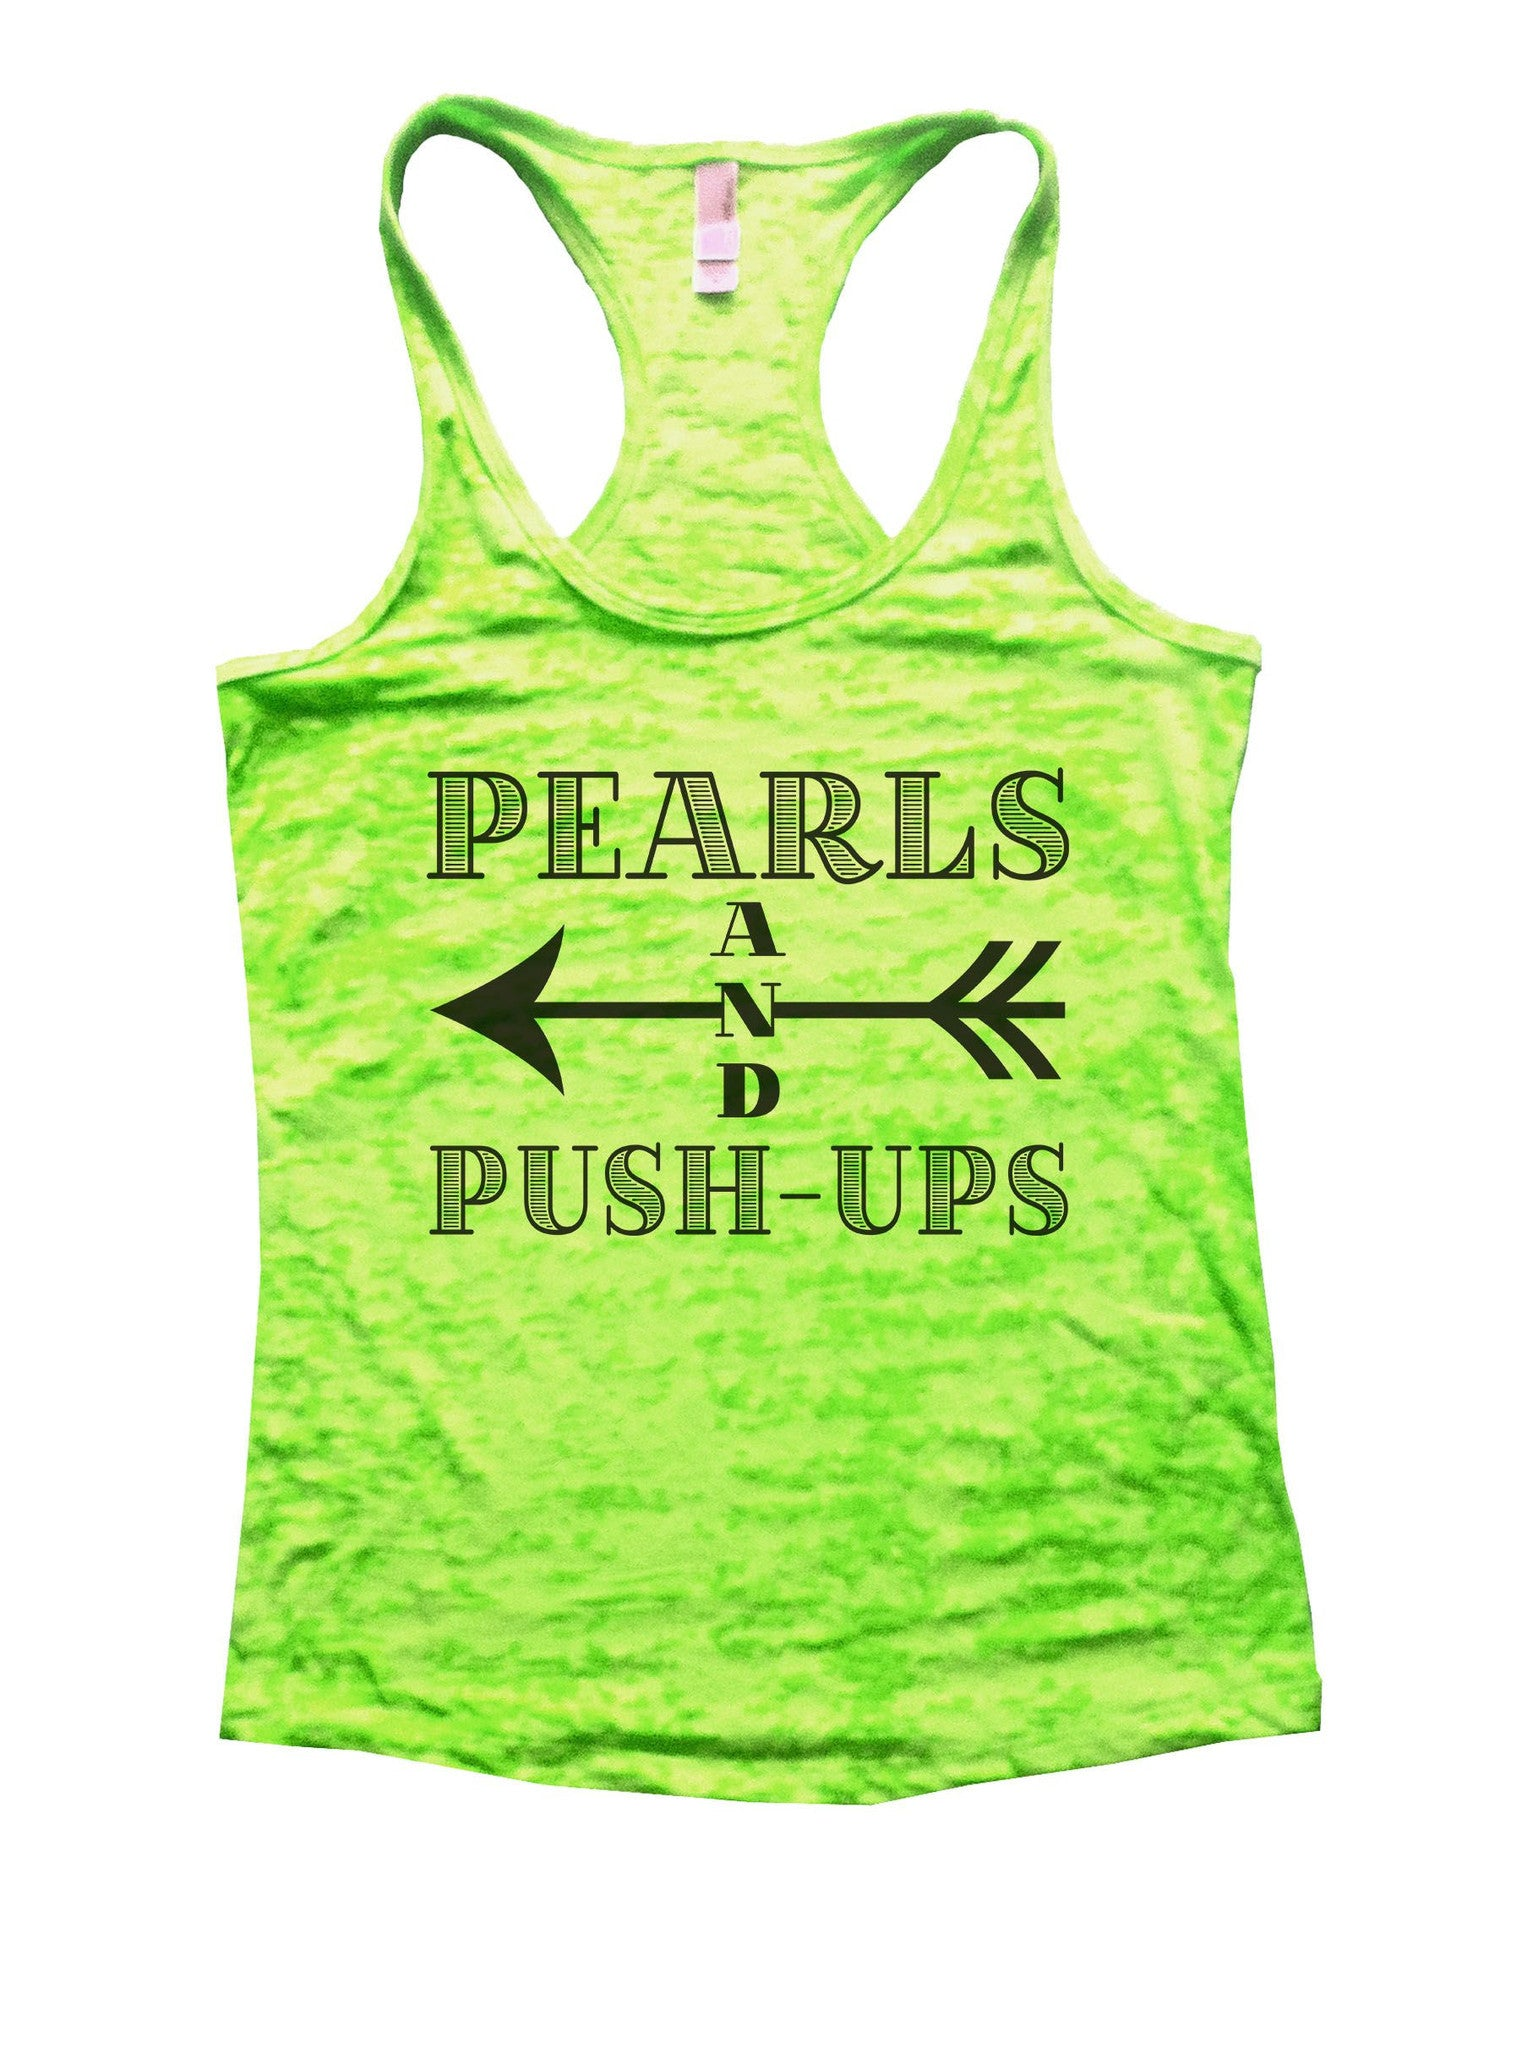 Pearls And Push-Ups Burnout Tank Top By BurnoutTankTops.com - 871 - Funny Shirts Tank Tops Burnouts and Triblends  - 2